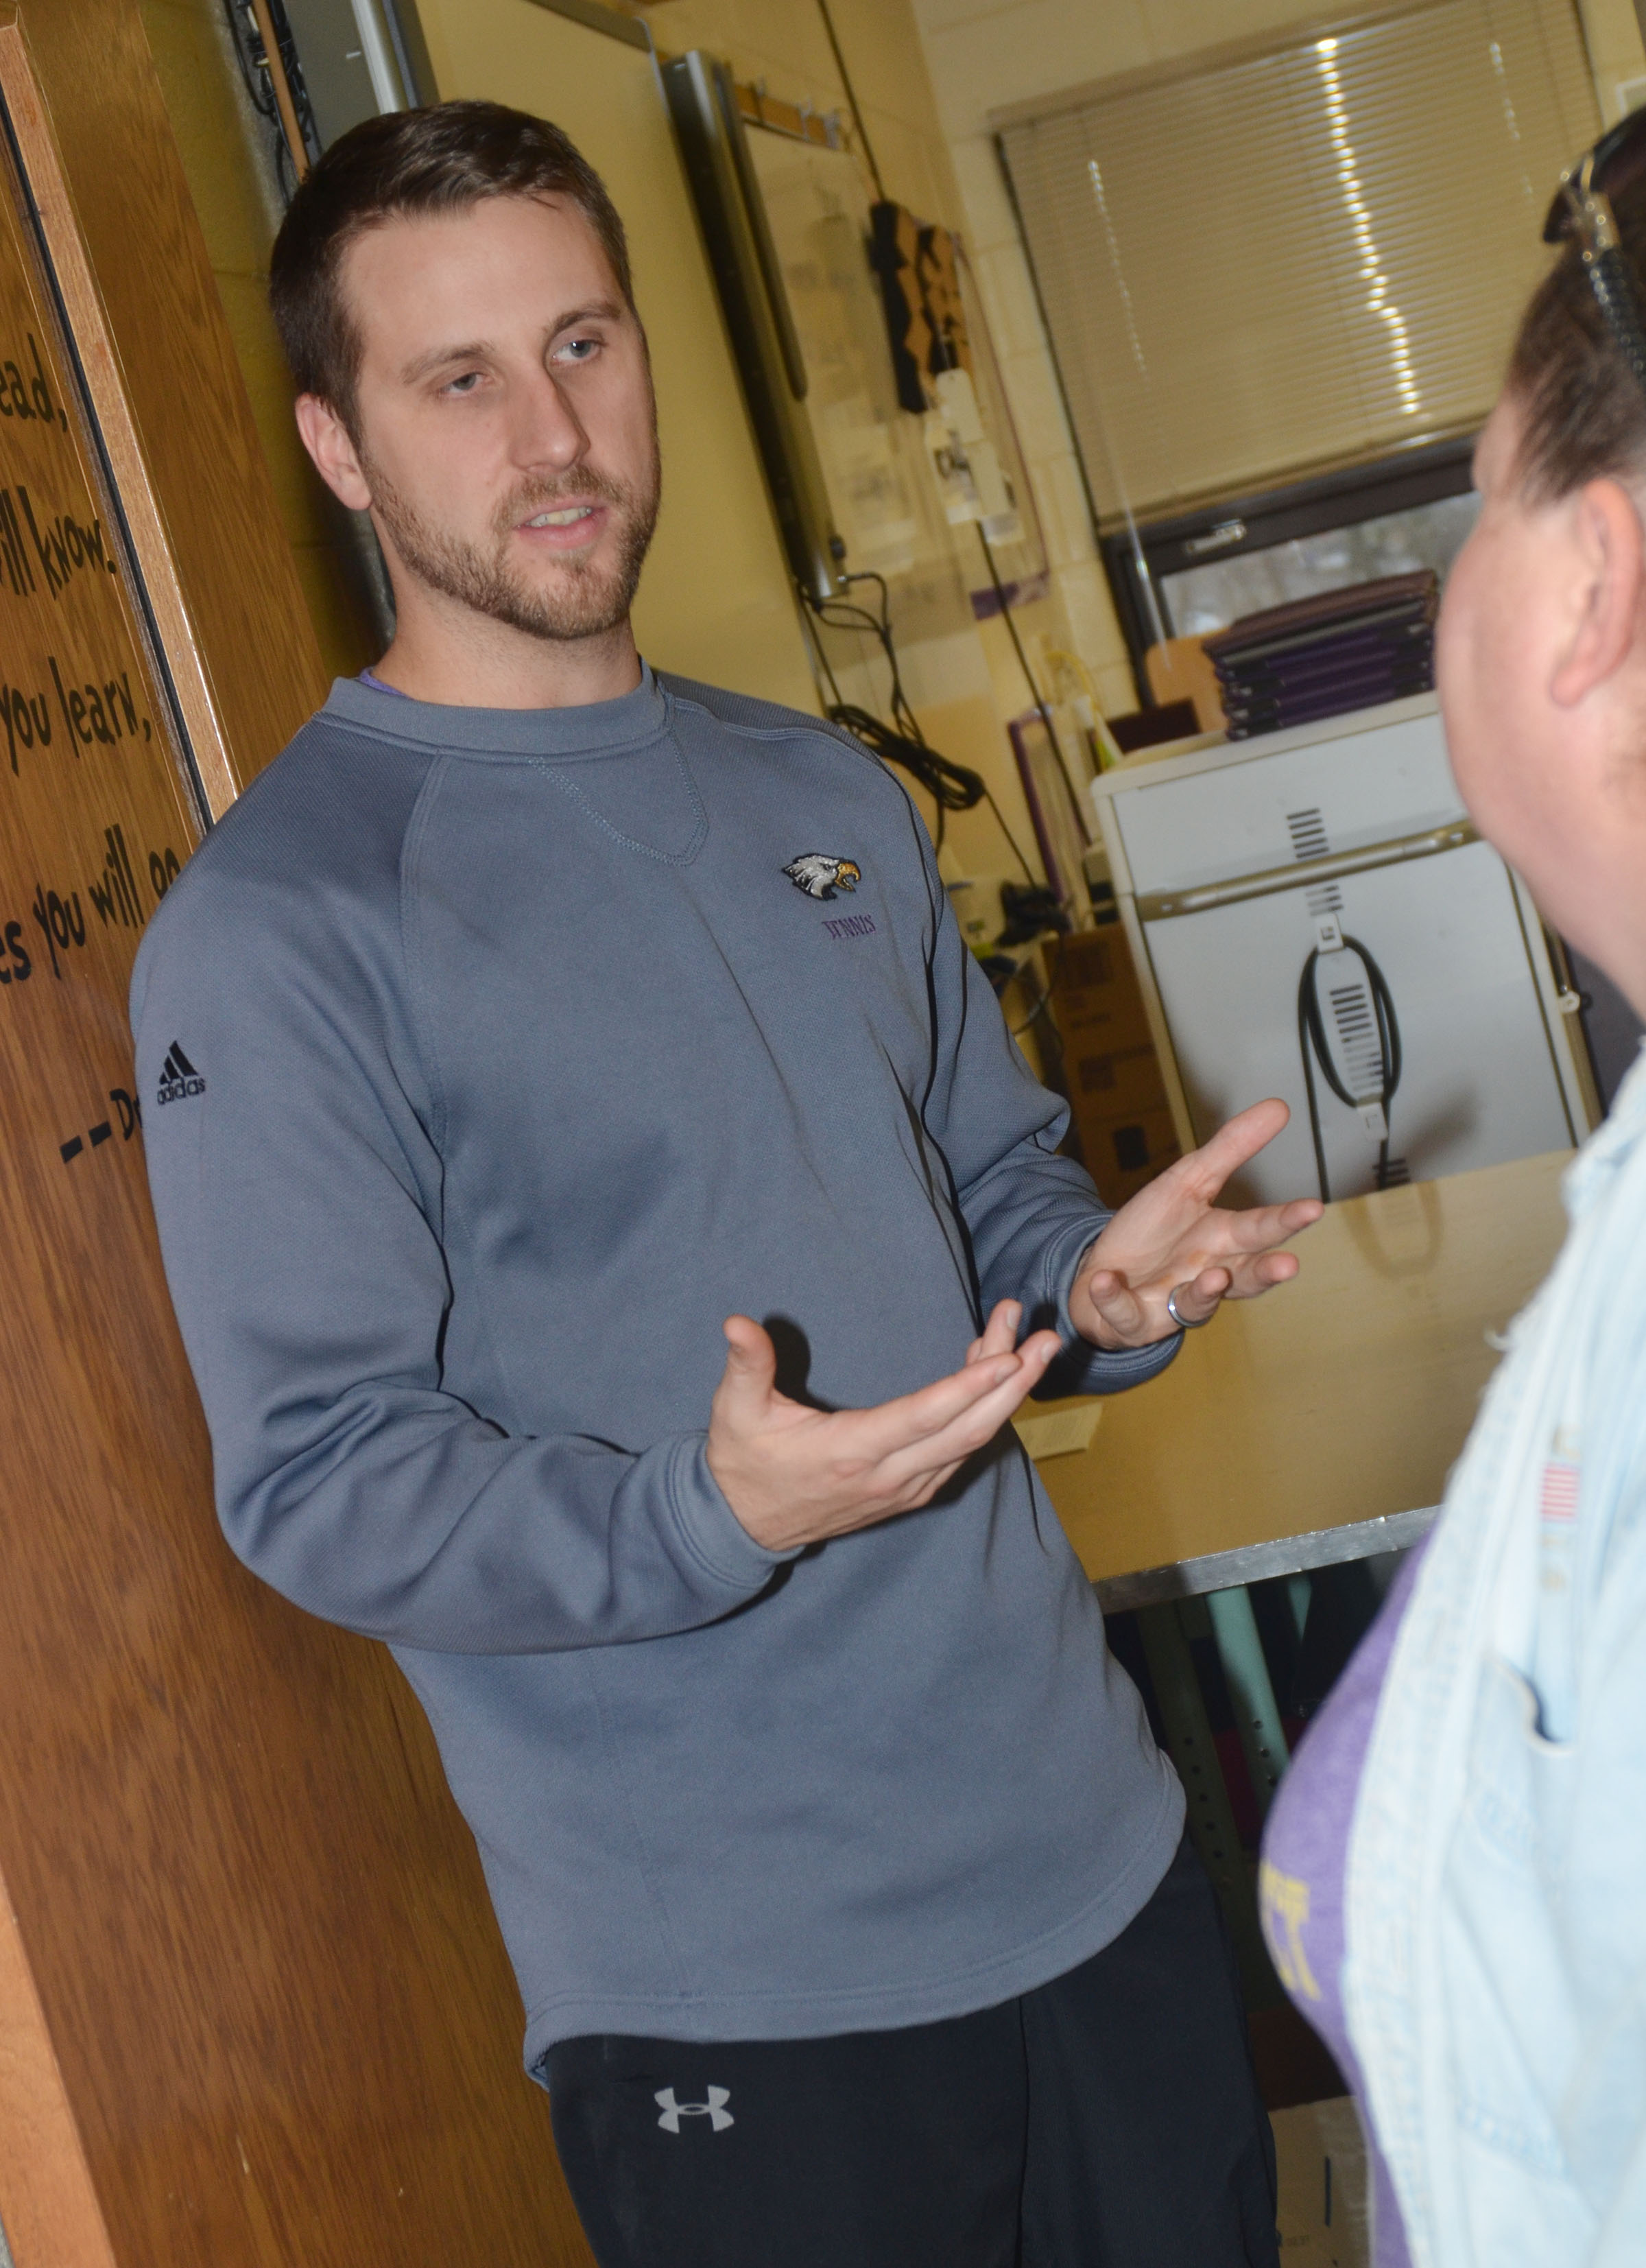 CHS teacher Tyler Hardy meets with a parent.